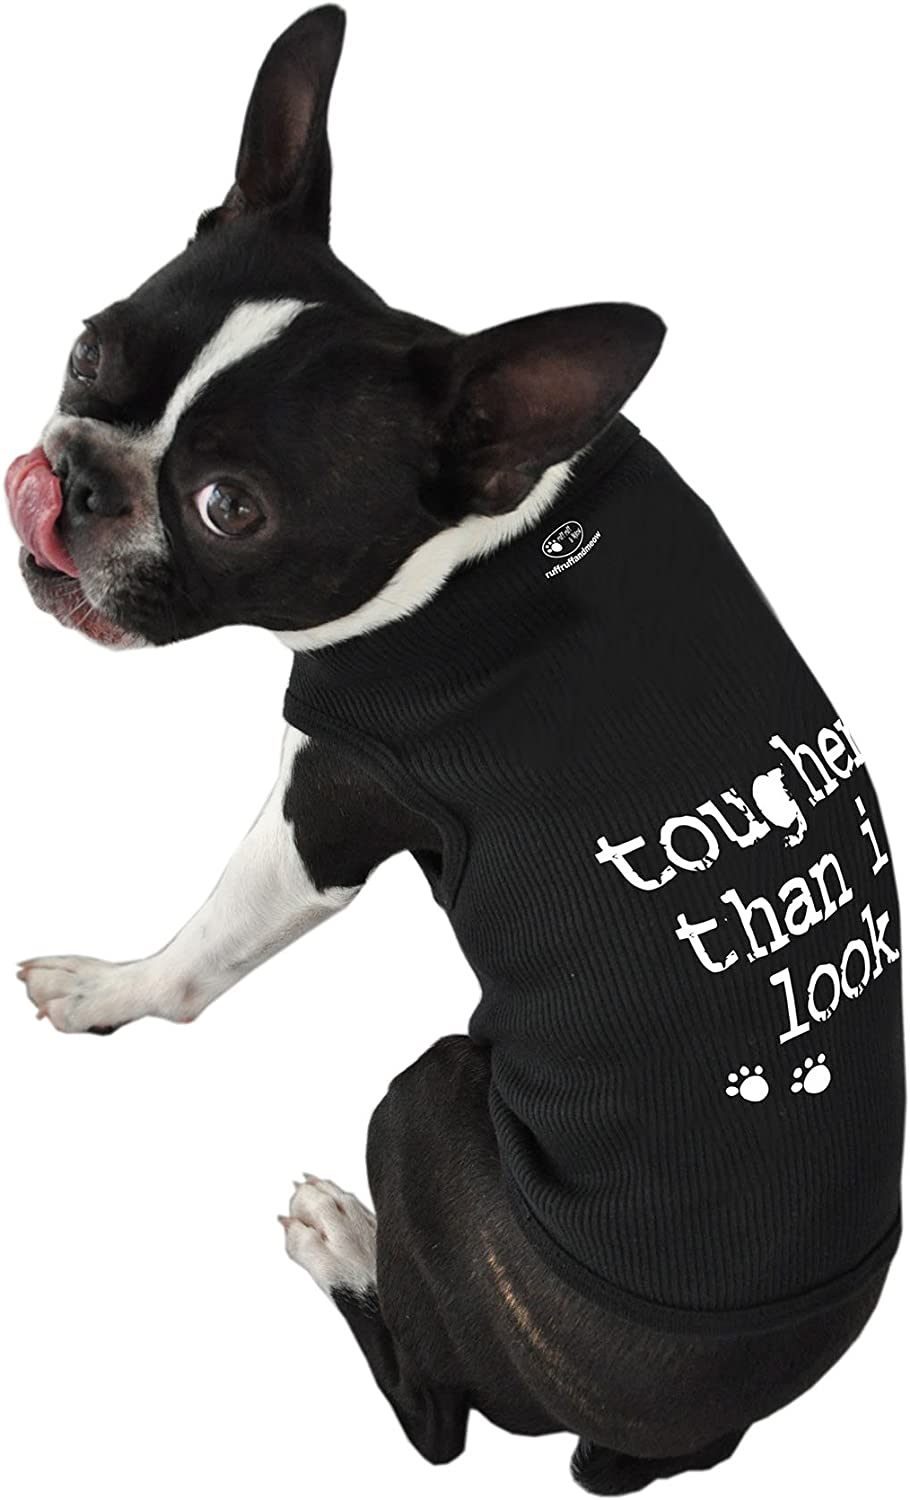 Ruff Ruff and Meow ExtraLarge Dog Tank Top, Tougher Than I Look, Black